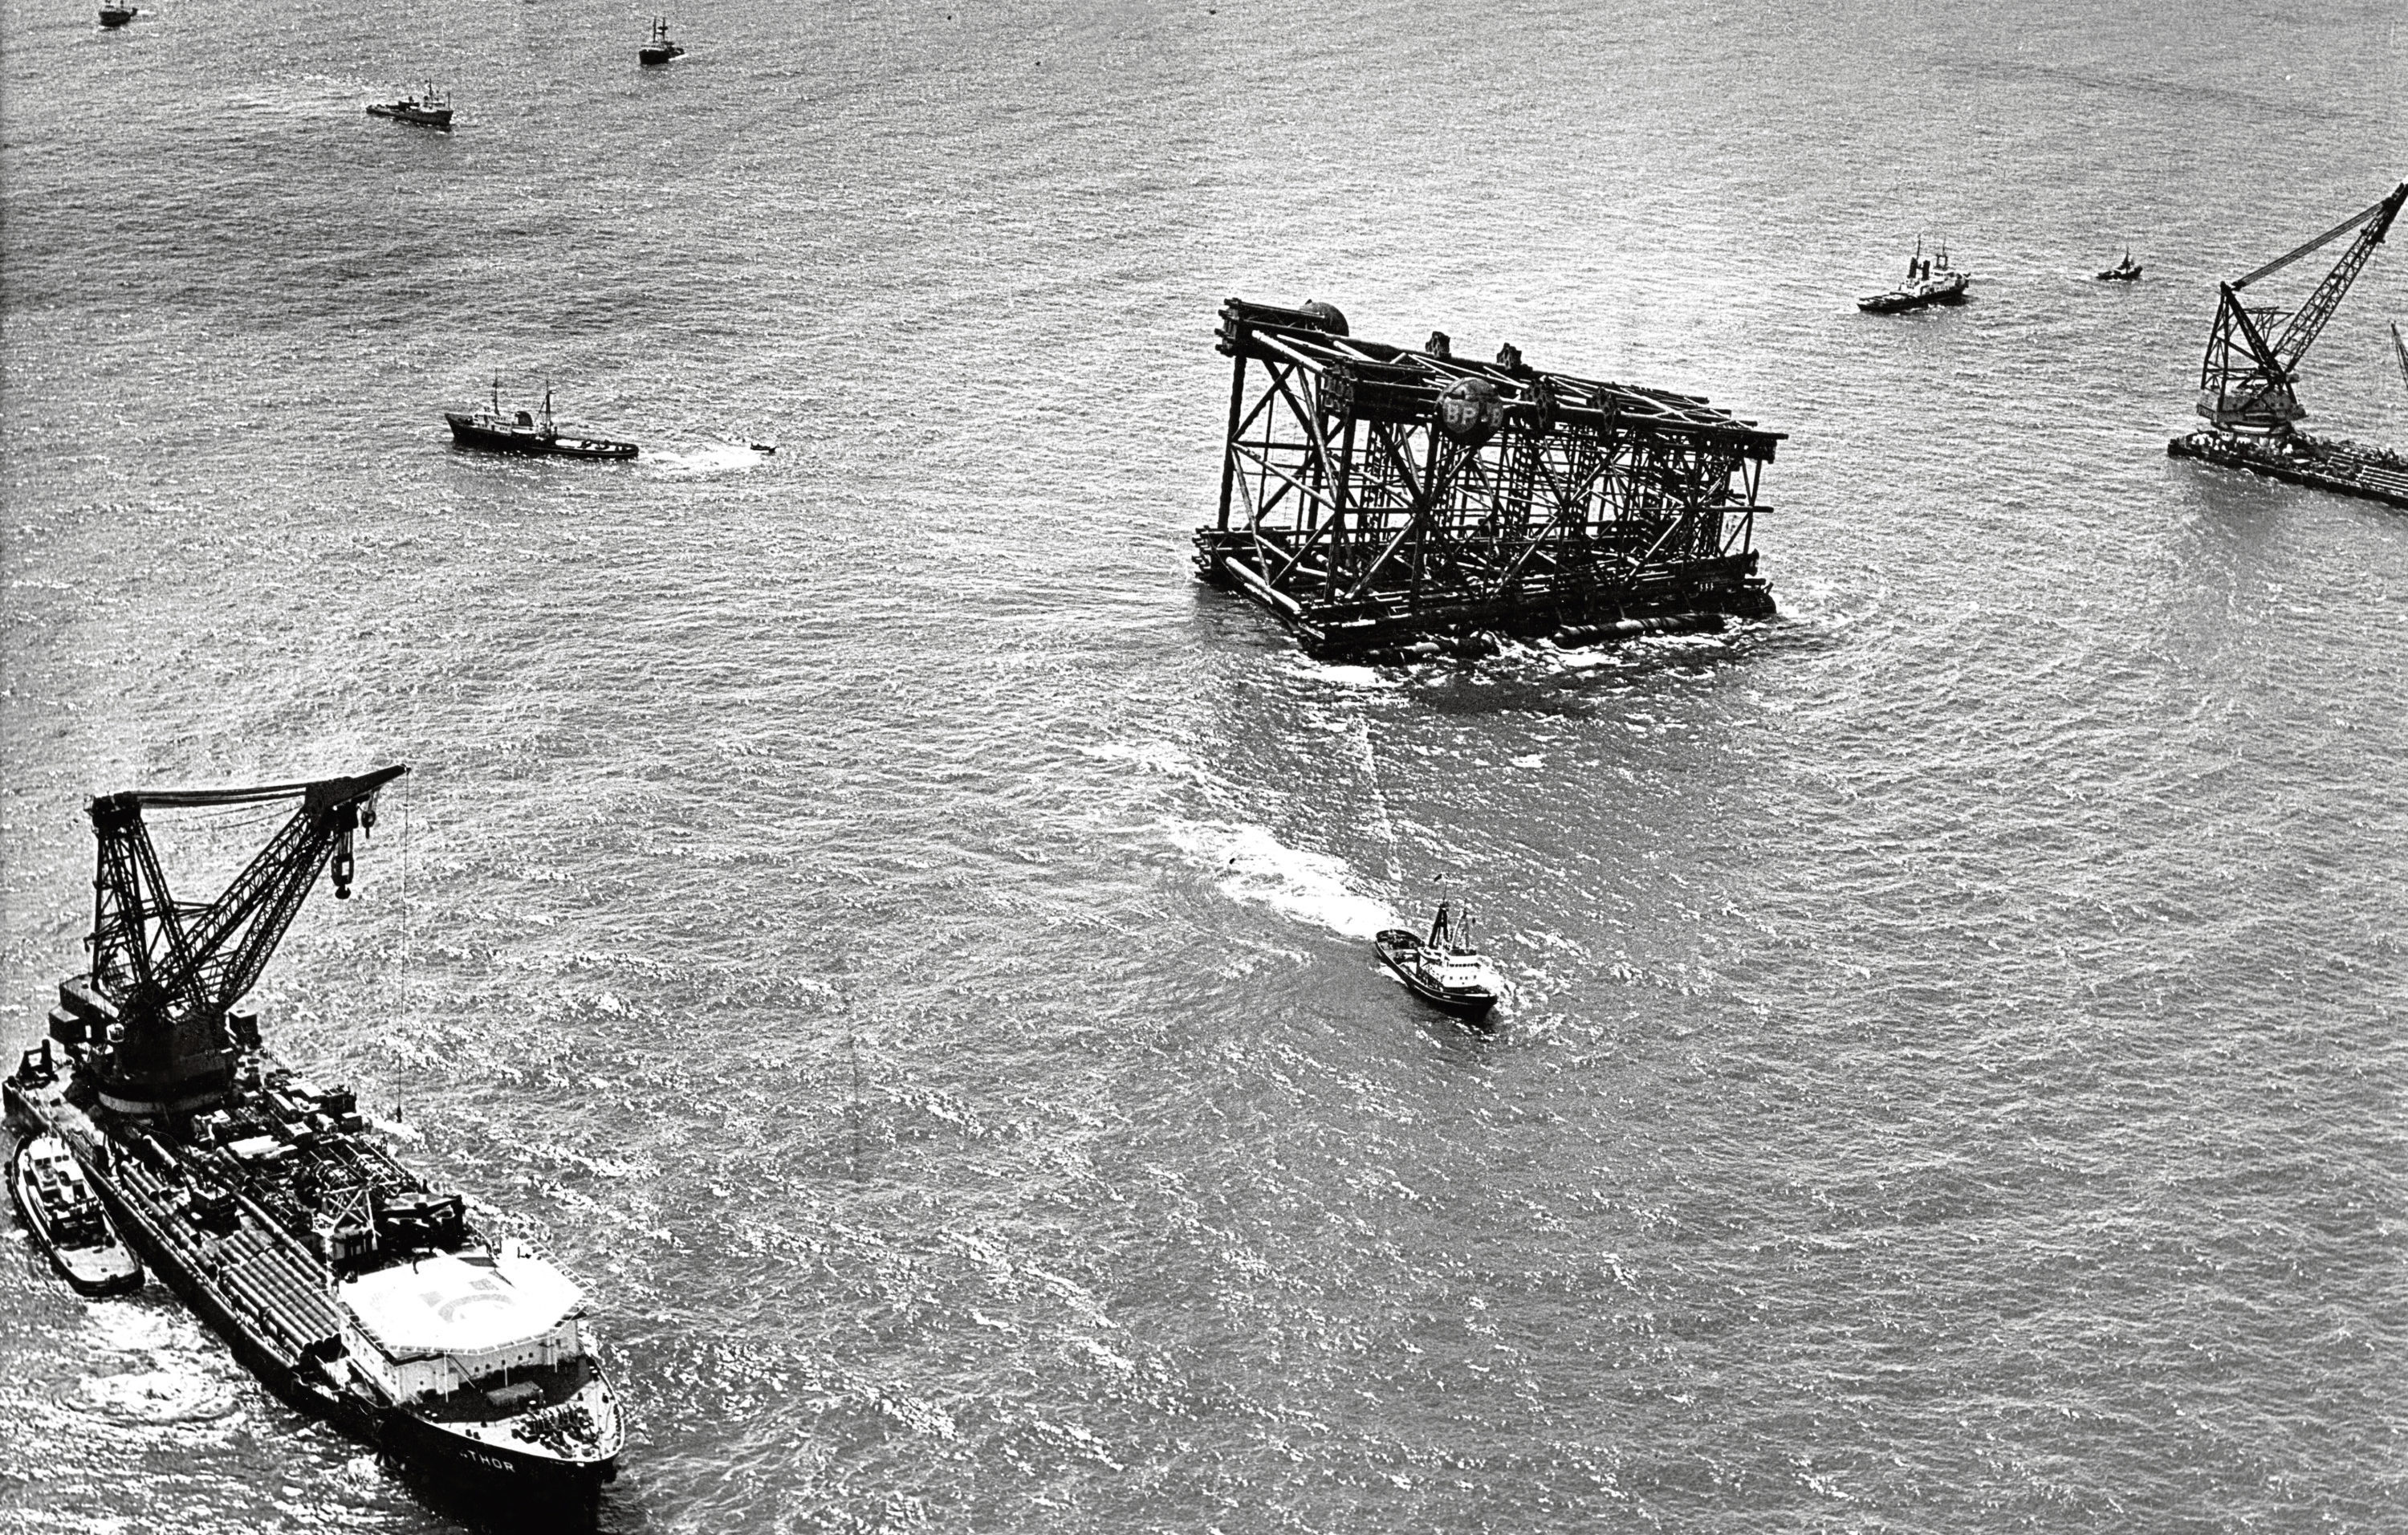 1974: The first North Sea oil platform, BP's Graythorpe One, tilts and submerges.